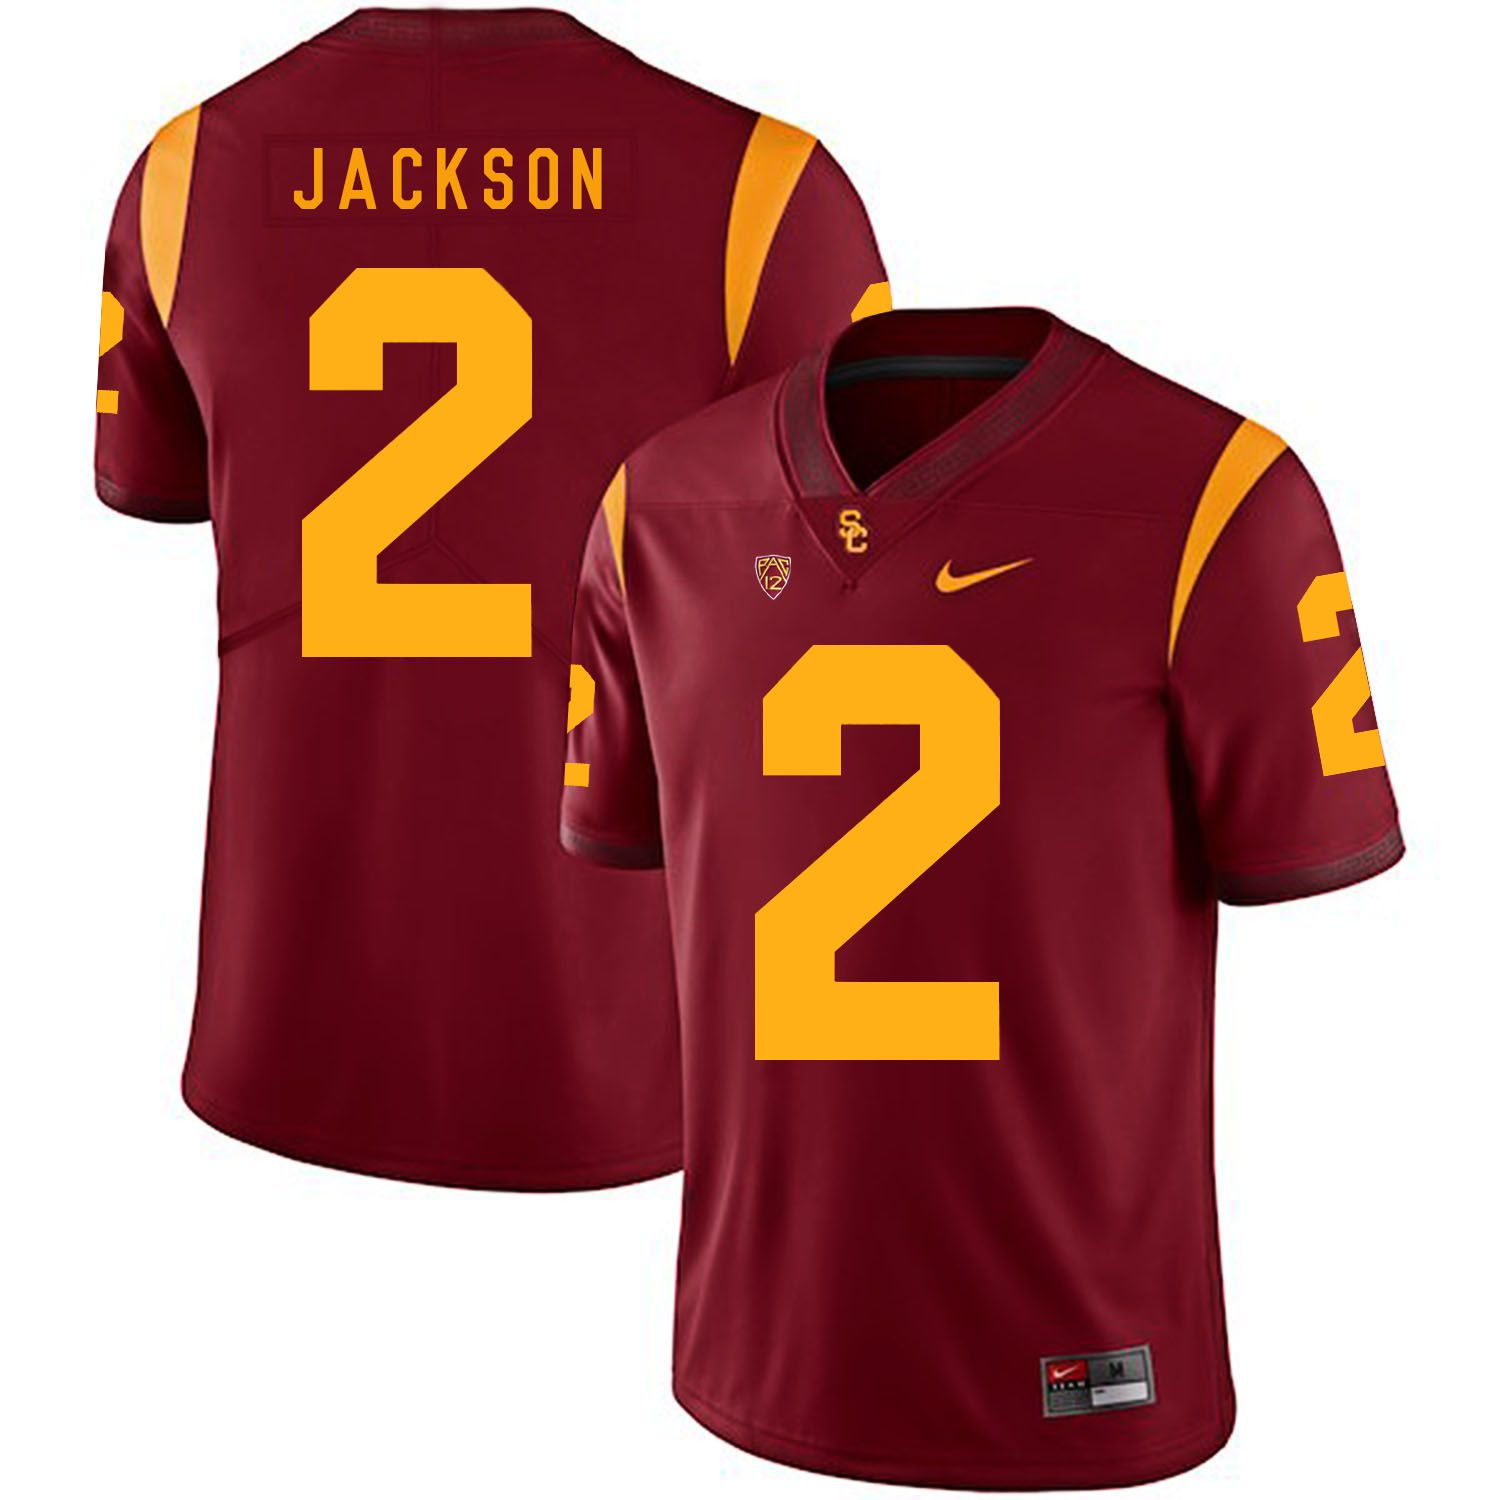 Men USC Trojans 2 Jackson Red Customized NCAA Jerseys